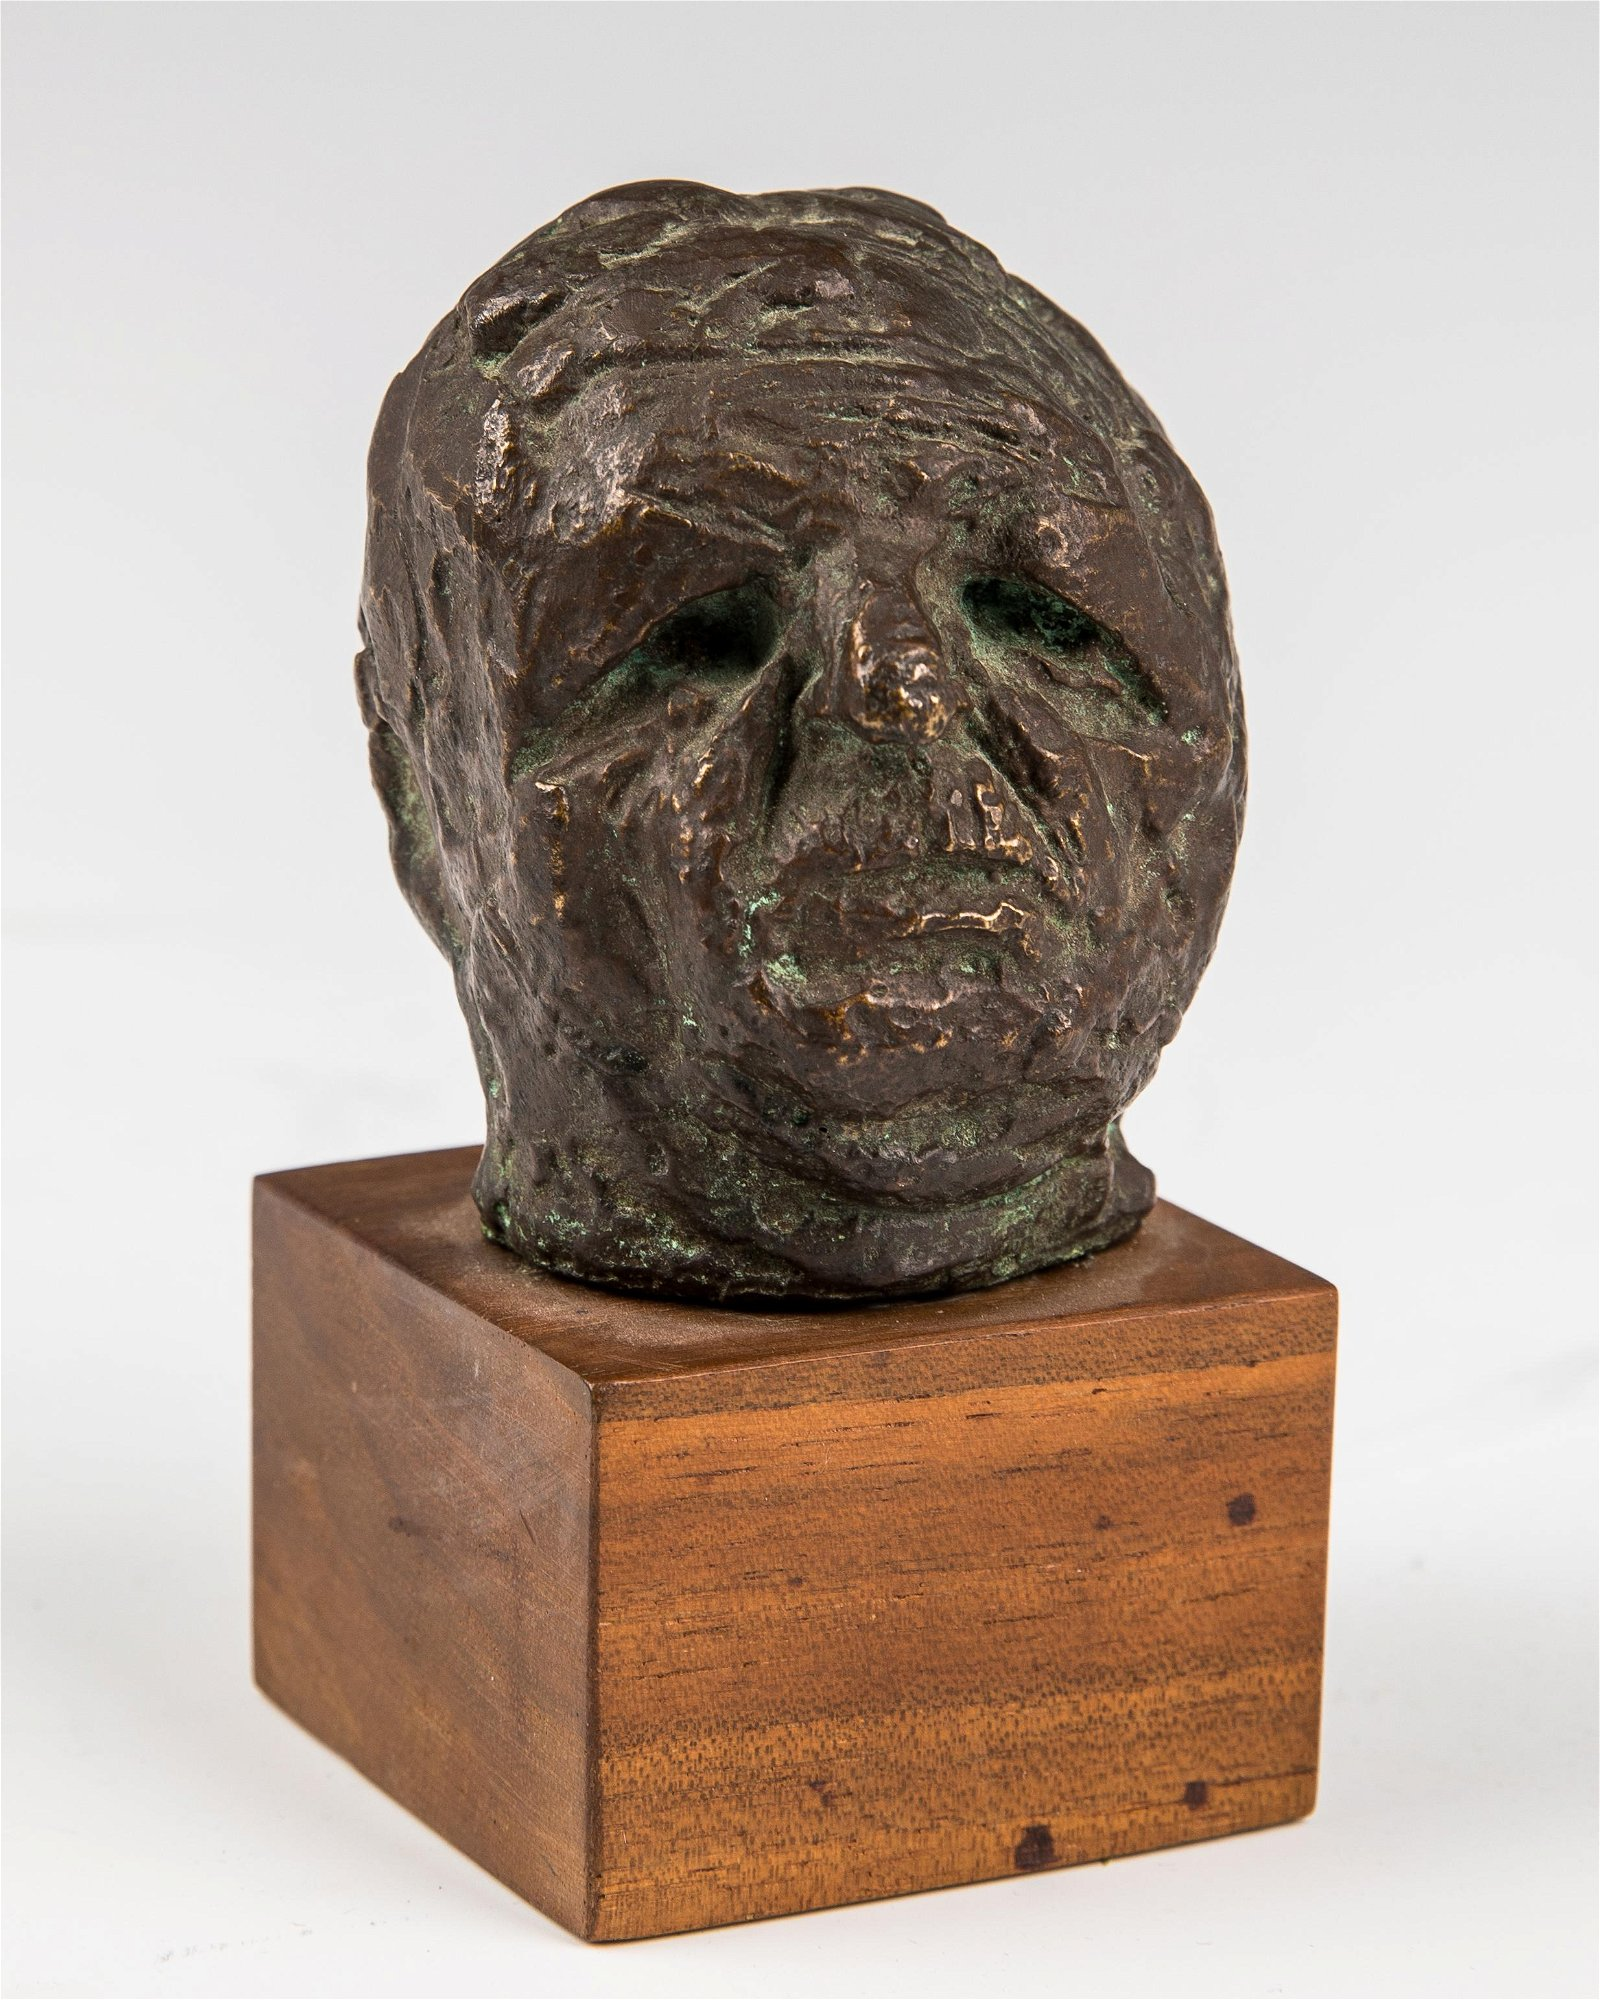 A BRONZE SCULPTURE OF A HEAD BY JAMES KEARNS. American,